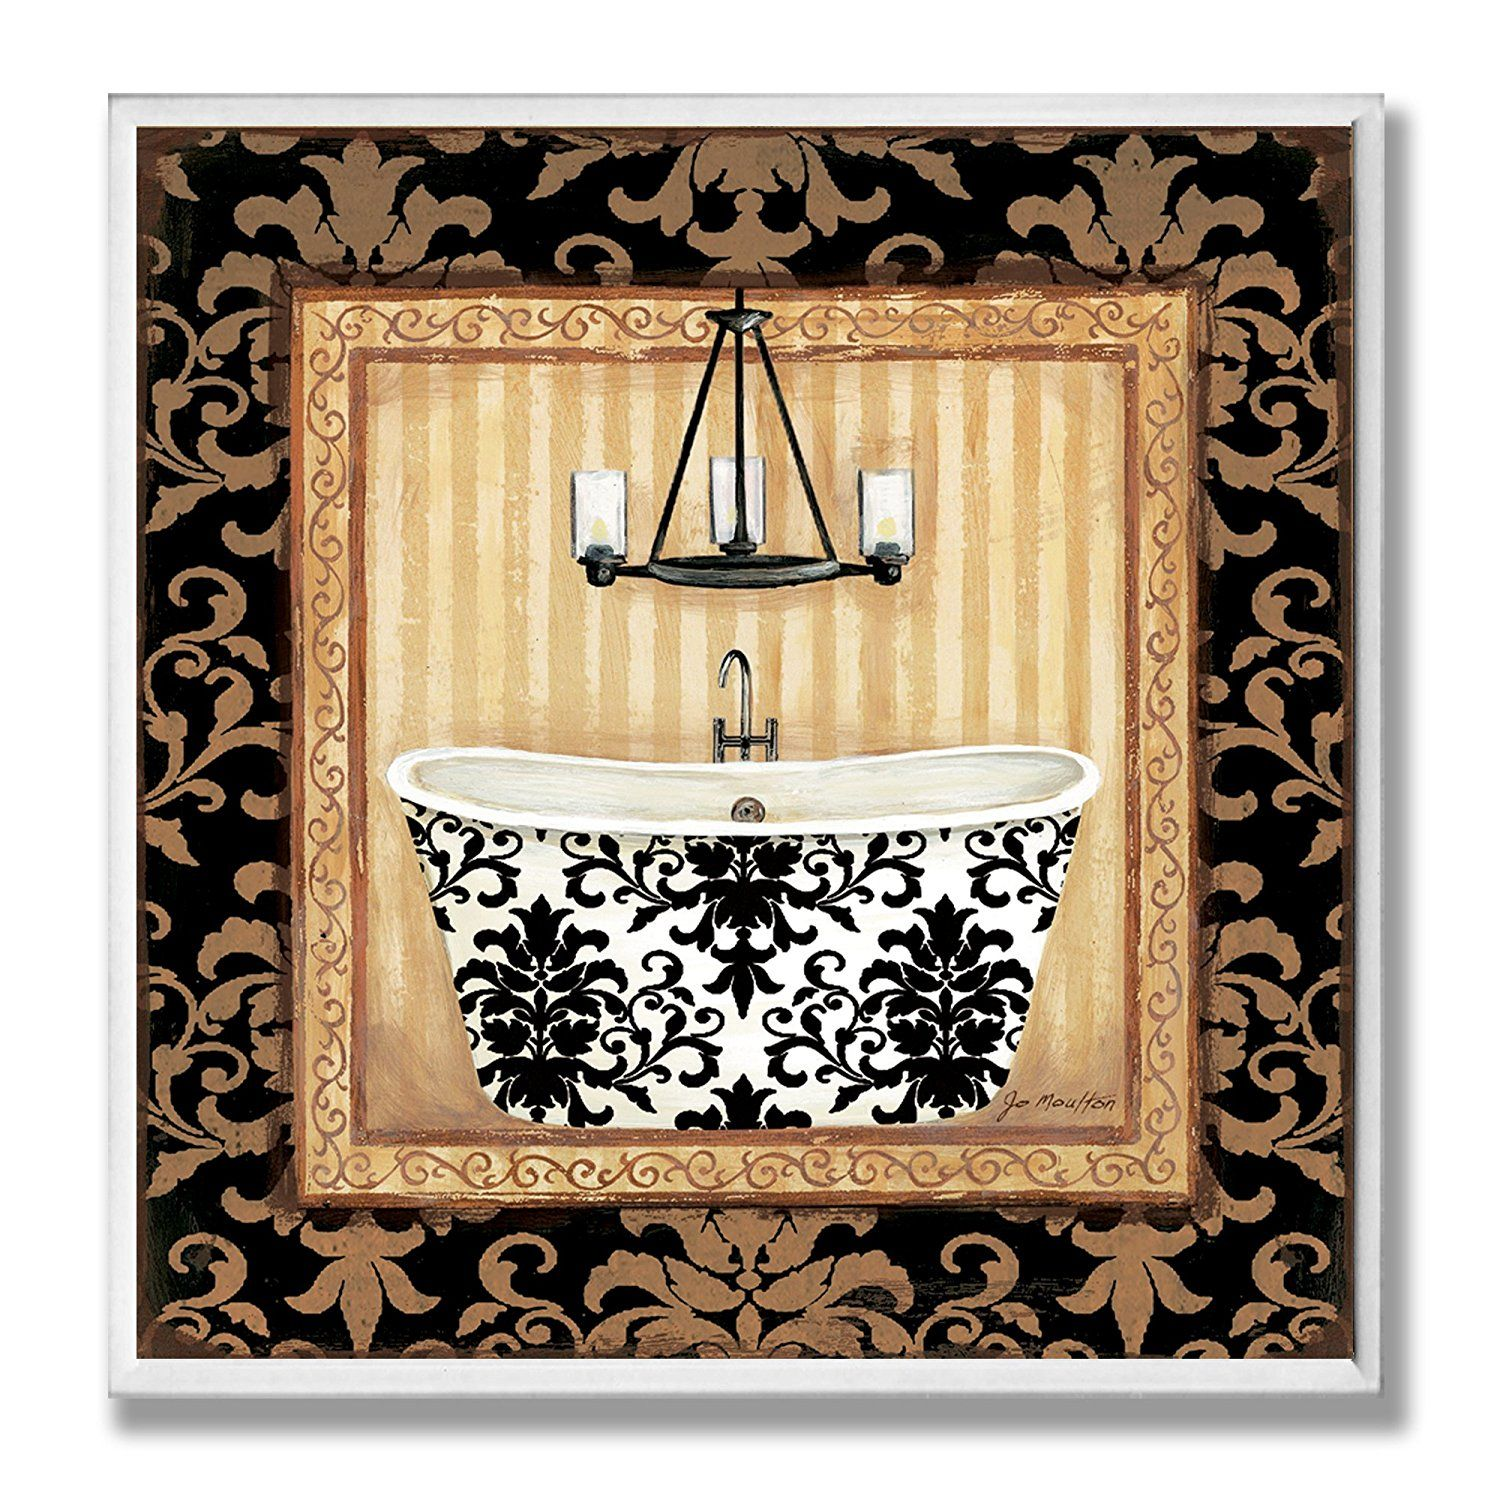 The Stupell Home Decor Collection Black Veranda Tub Bathroom Wall ...